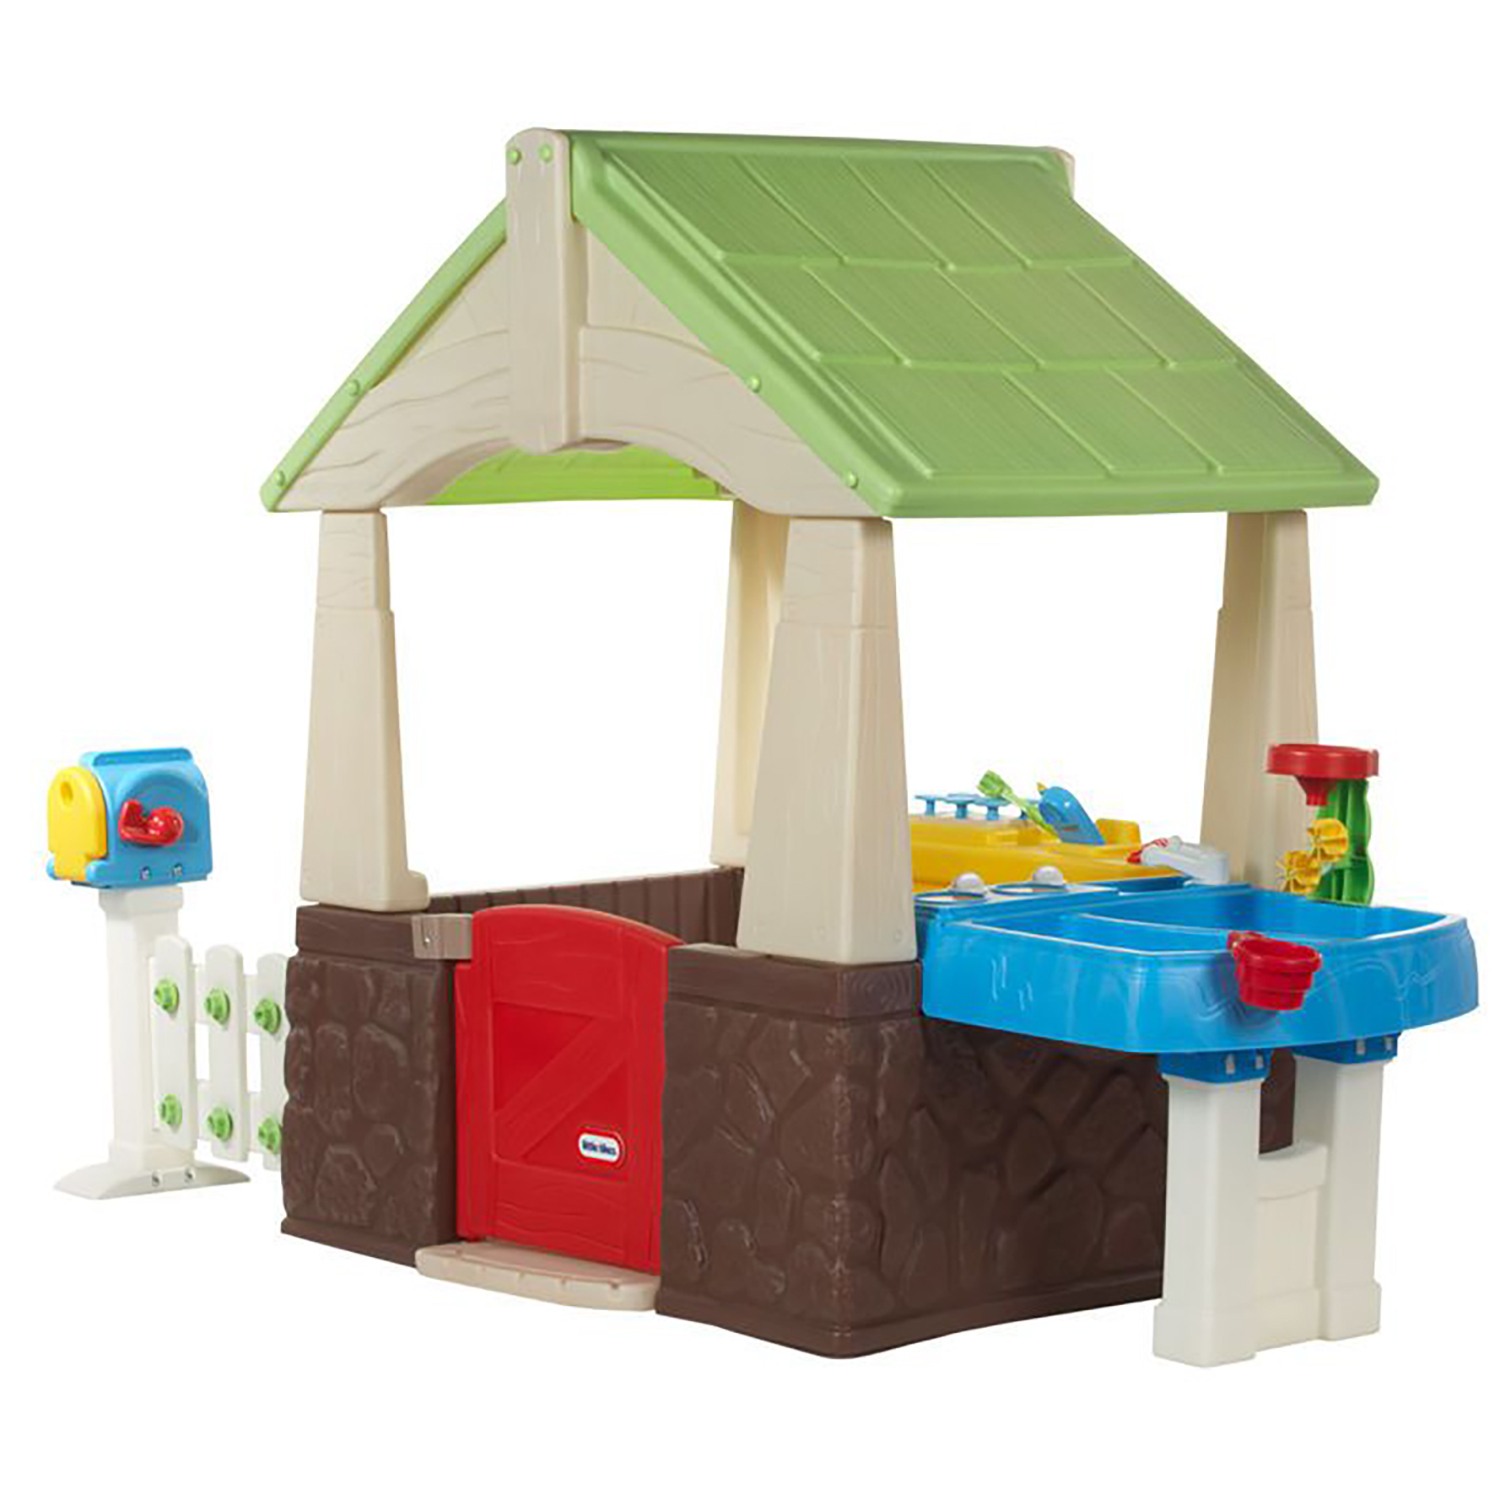 Little Tikes Deluxe Home and Garden Portable Outdoor Backyard ...